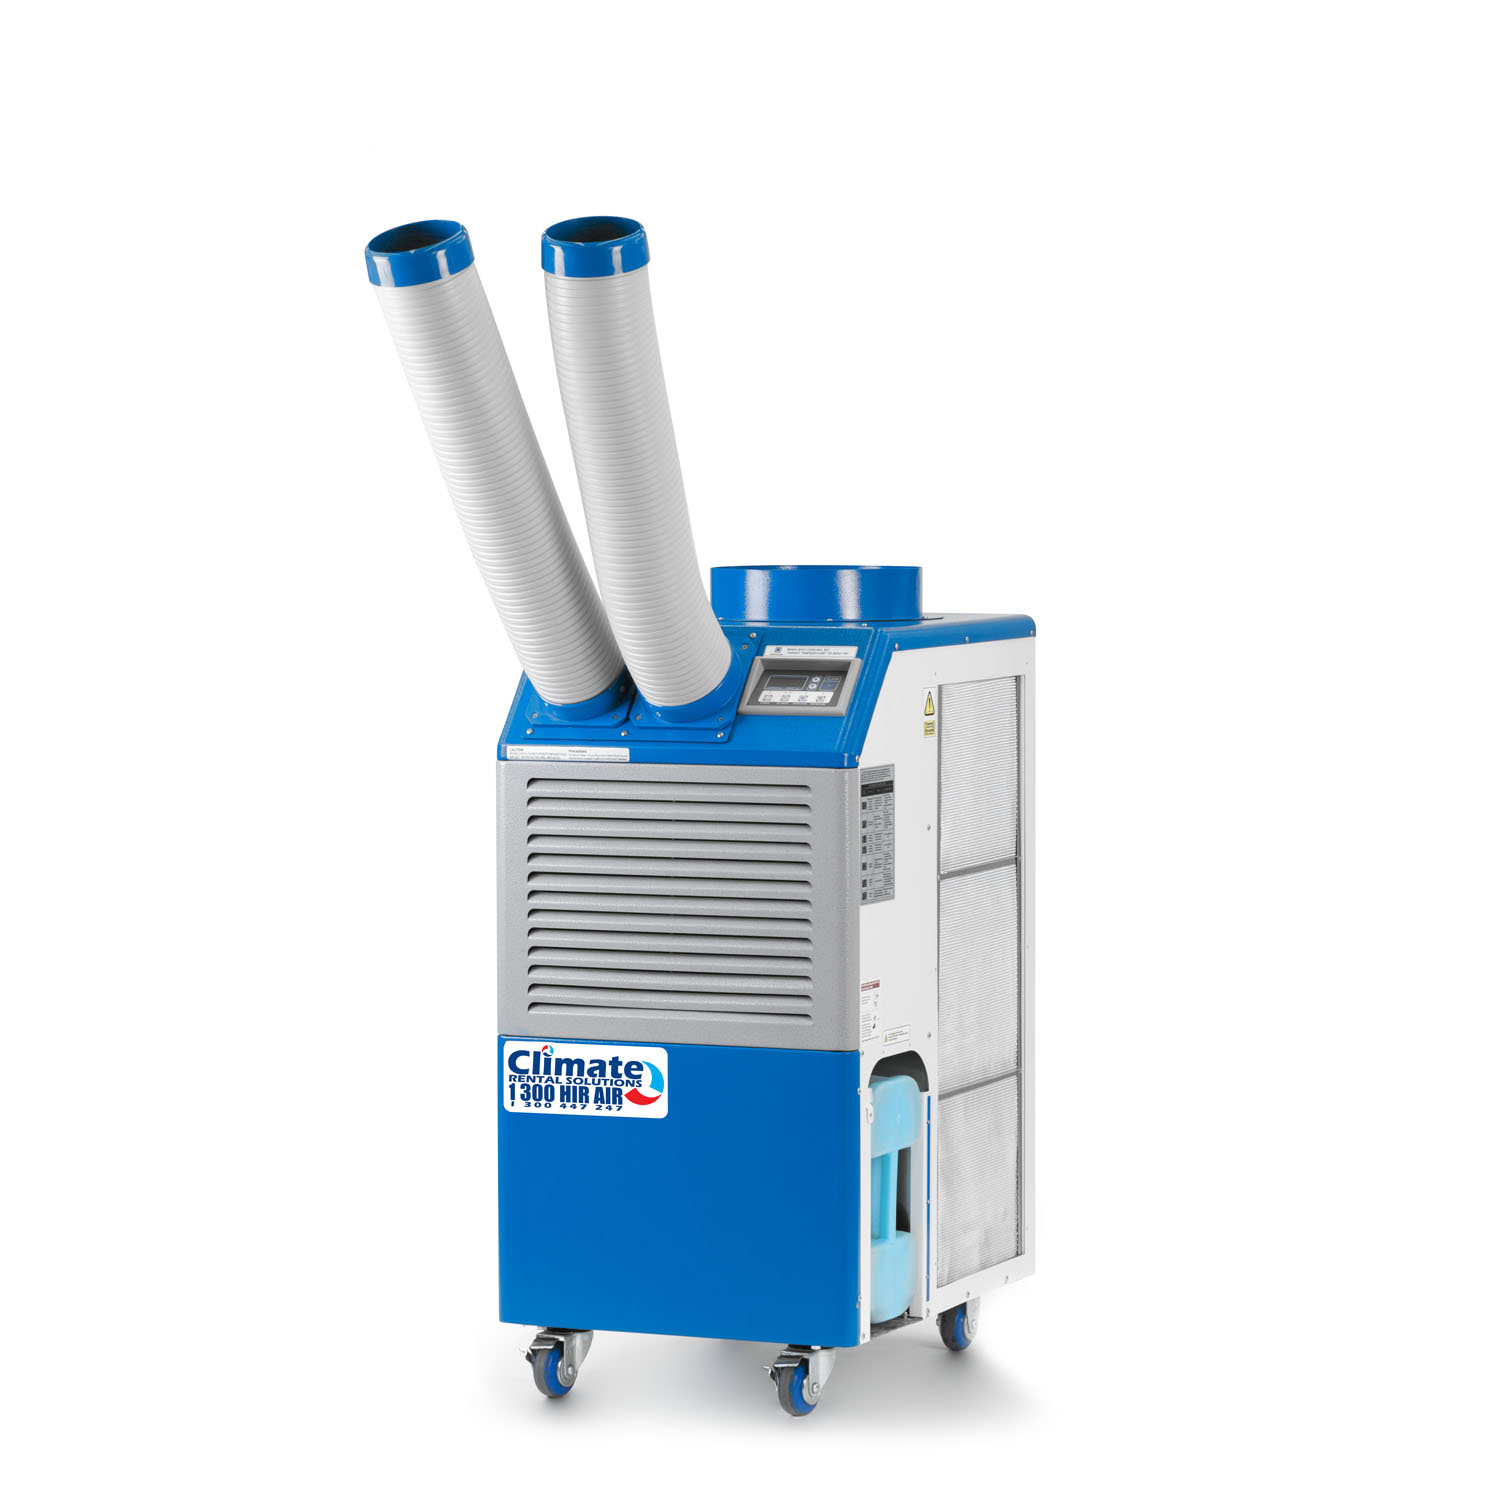 6 1kw Portable Air Conditioner Climate Rental Solutions